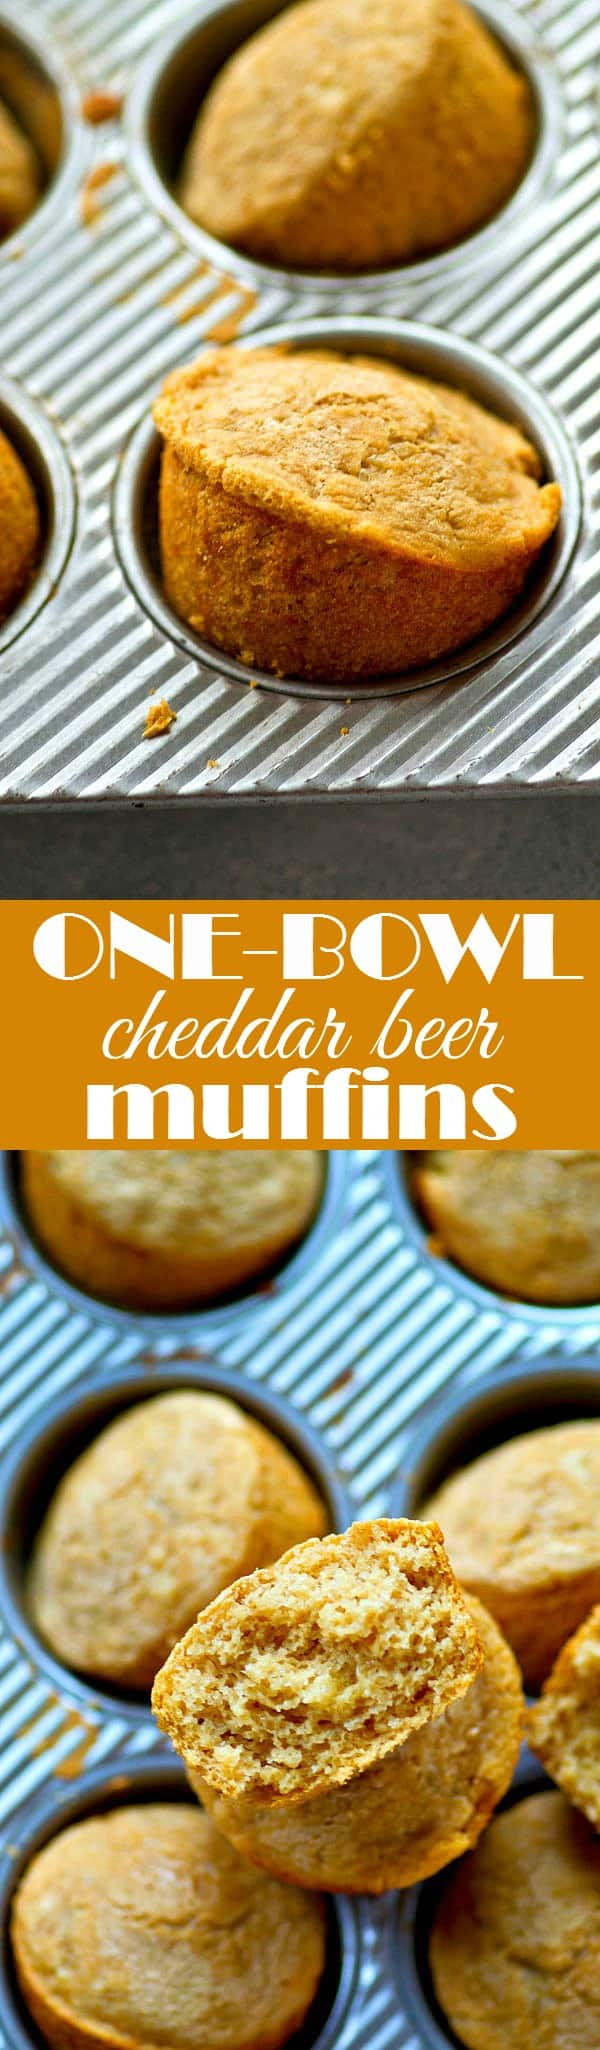 One bowl and 7 ingredients is all you're going to need to mix up batch after batch of these insanely-soft cheddar beer muffins.---They're SO good next to a bowl of chili!